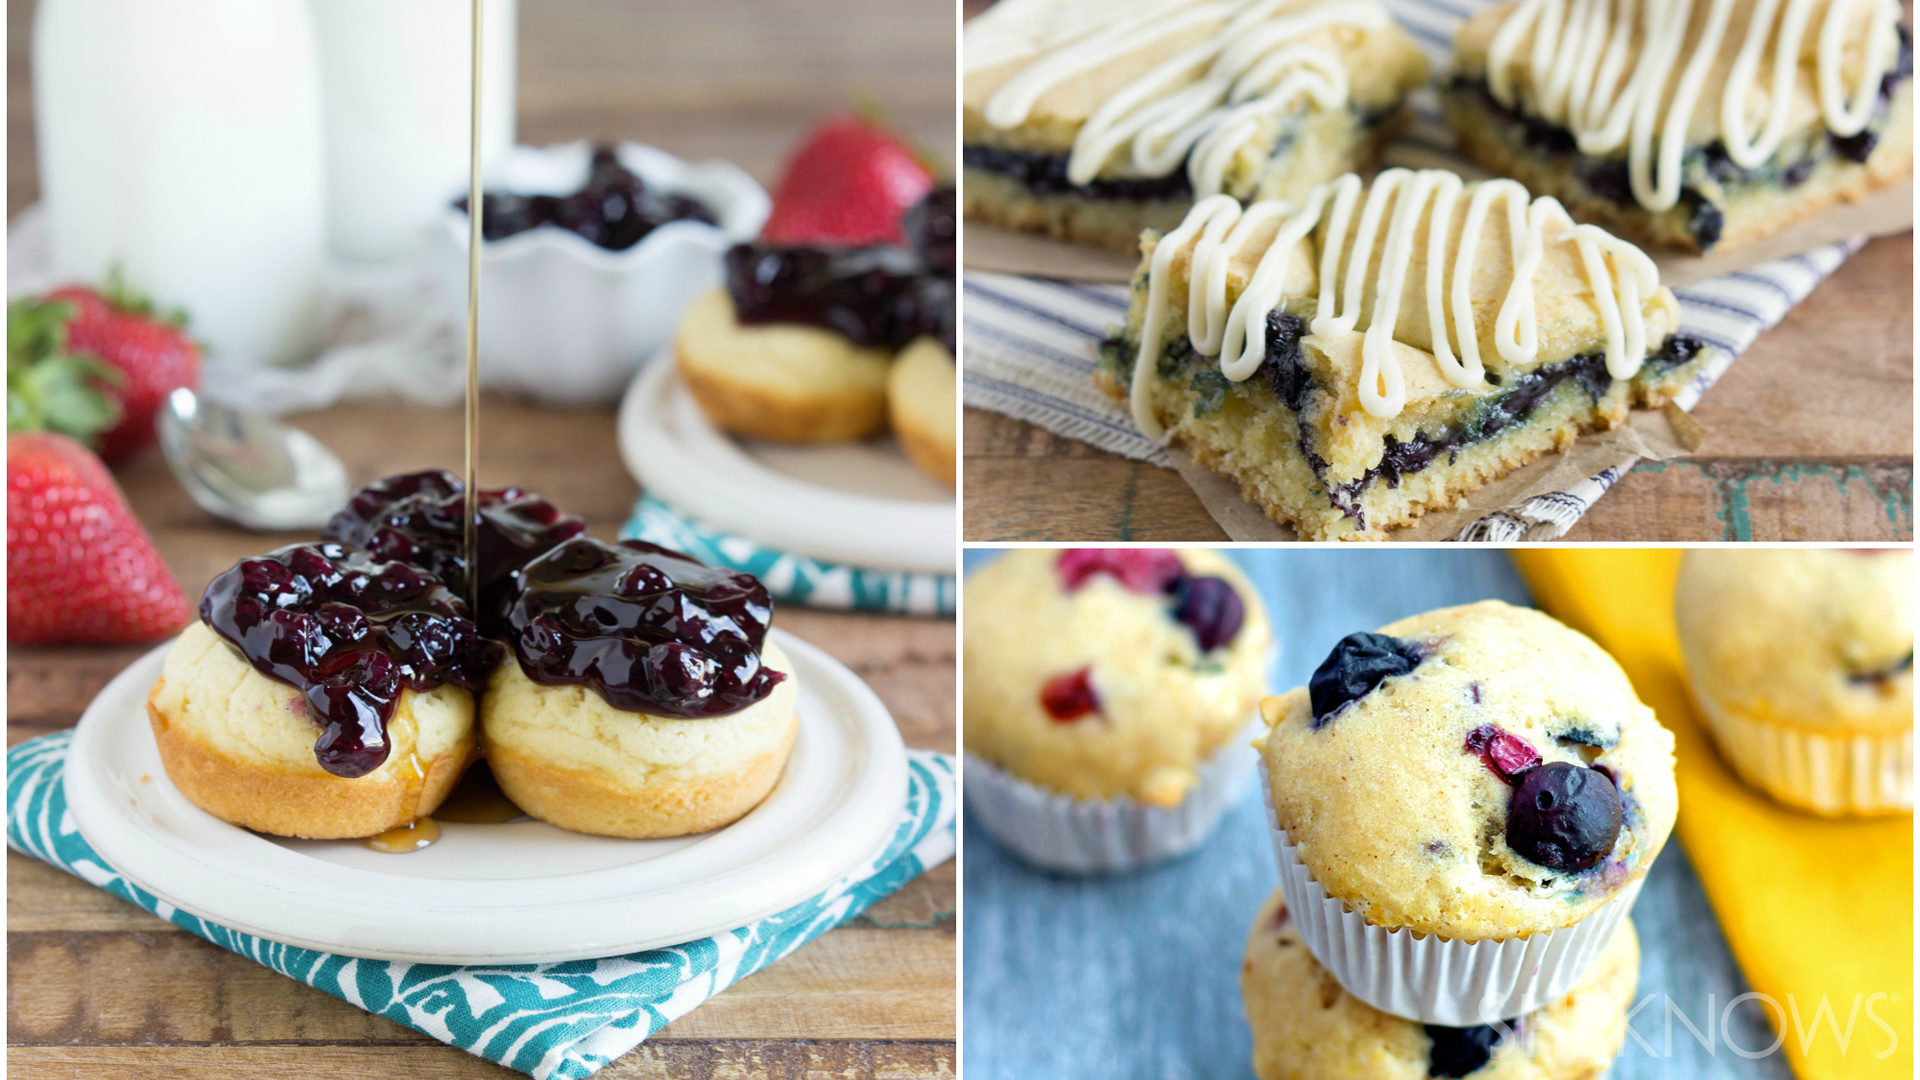 Simple blueberry desserts